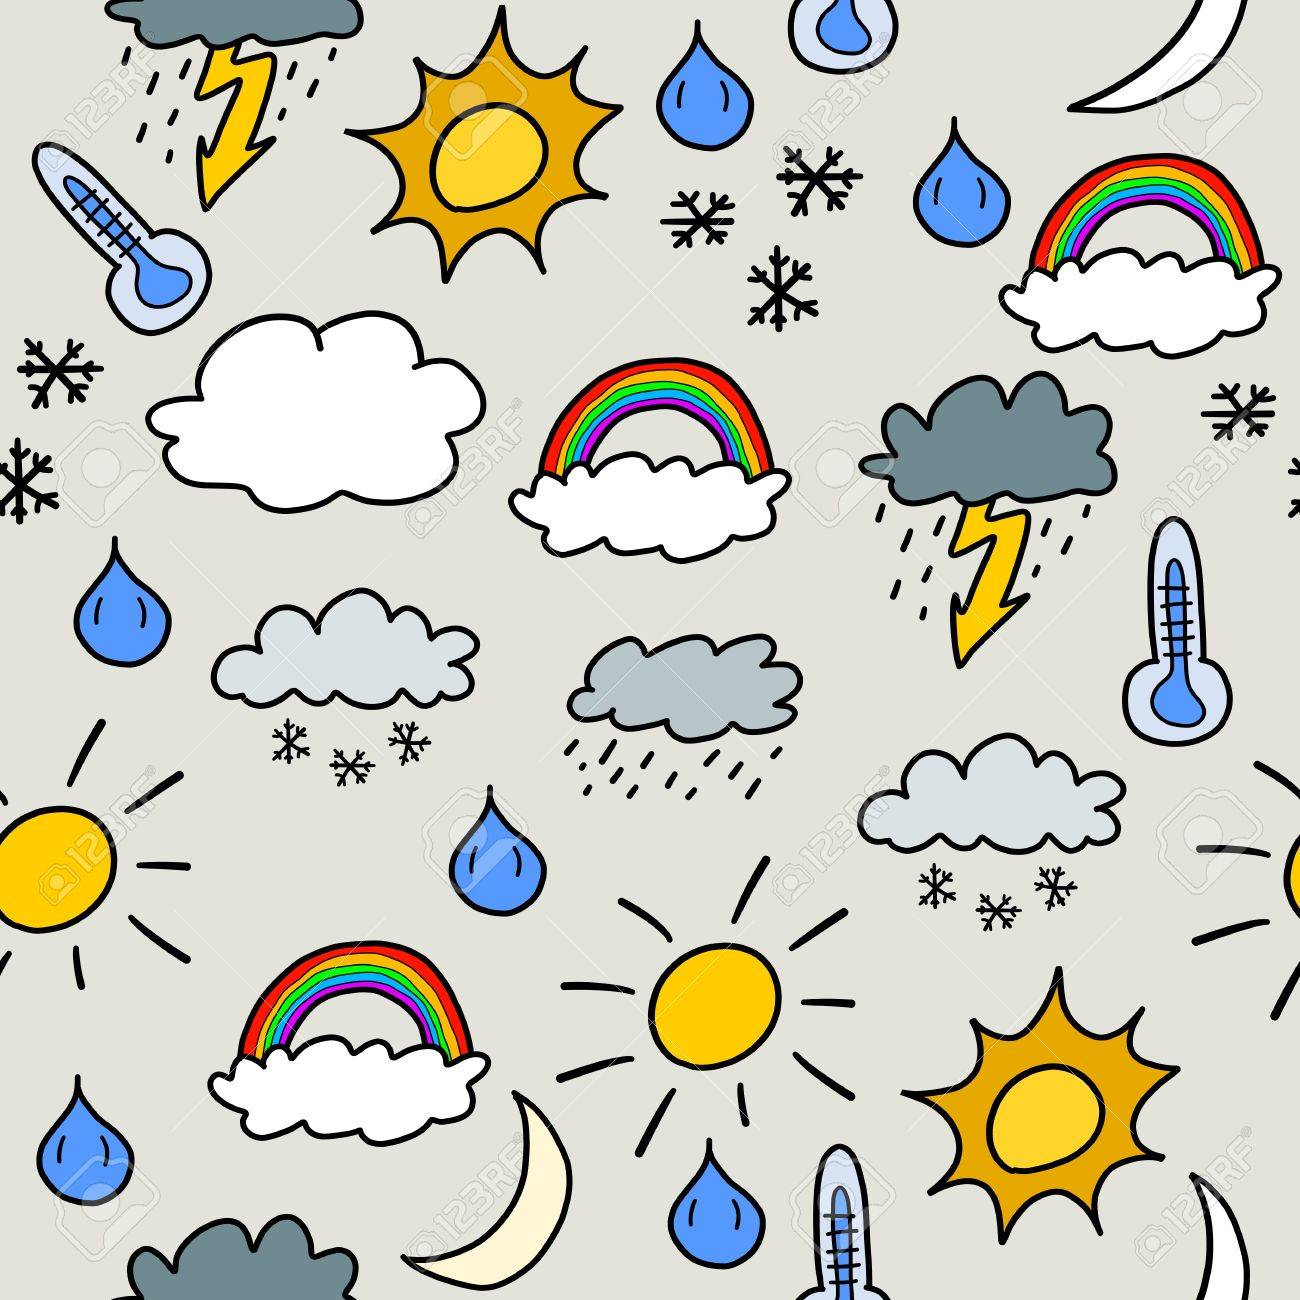 Doodle seamless background texture illustration - weather symbols collection with suns, clouds, storms and snow Stock Vector - 22820250